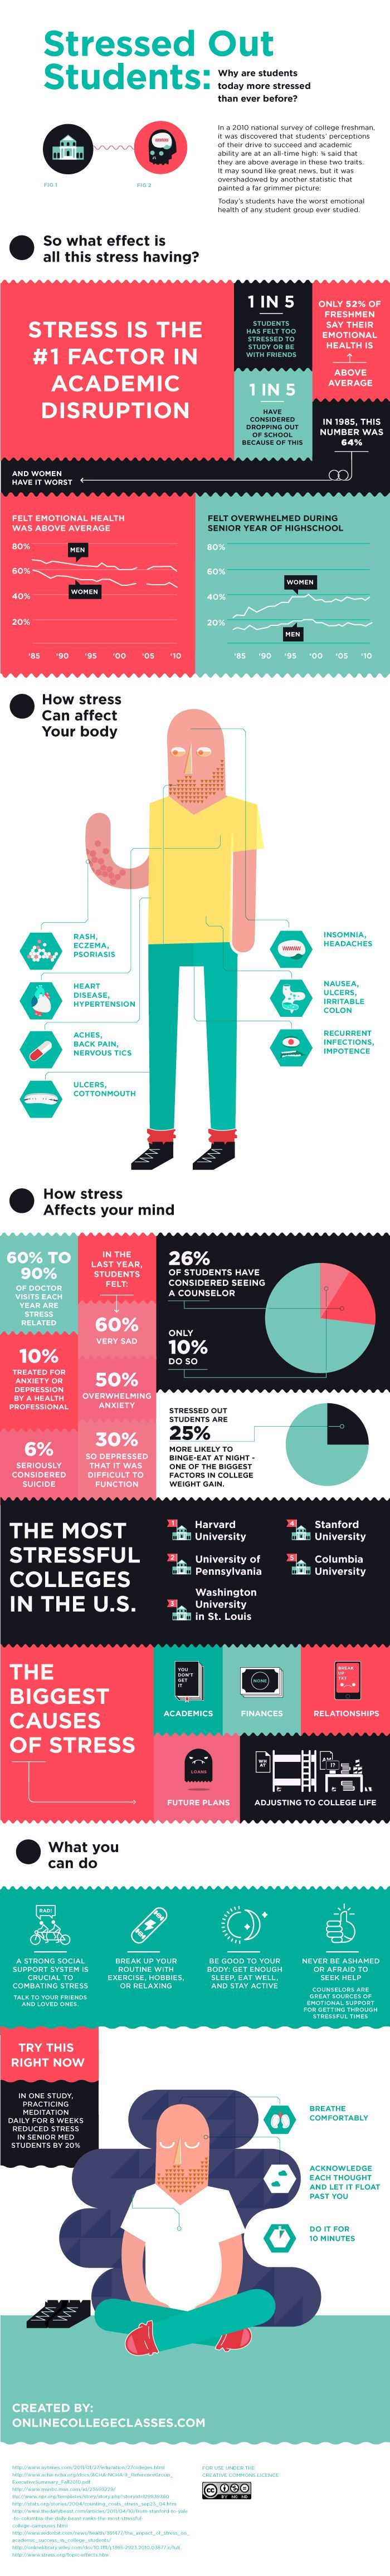 causes of stress on college students Student anxiety over exams is increasing according to students in the survey (sadie blood) a study of more than 2,000 senior college students says fear of lower grades and eventual job market failure are major factors in exam stress and anxiety students at campuses around the us participated in the study, hosted by stop procrastinating.